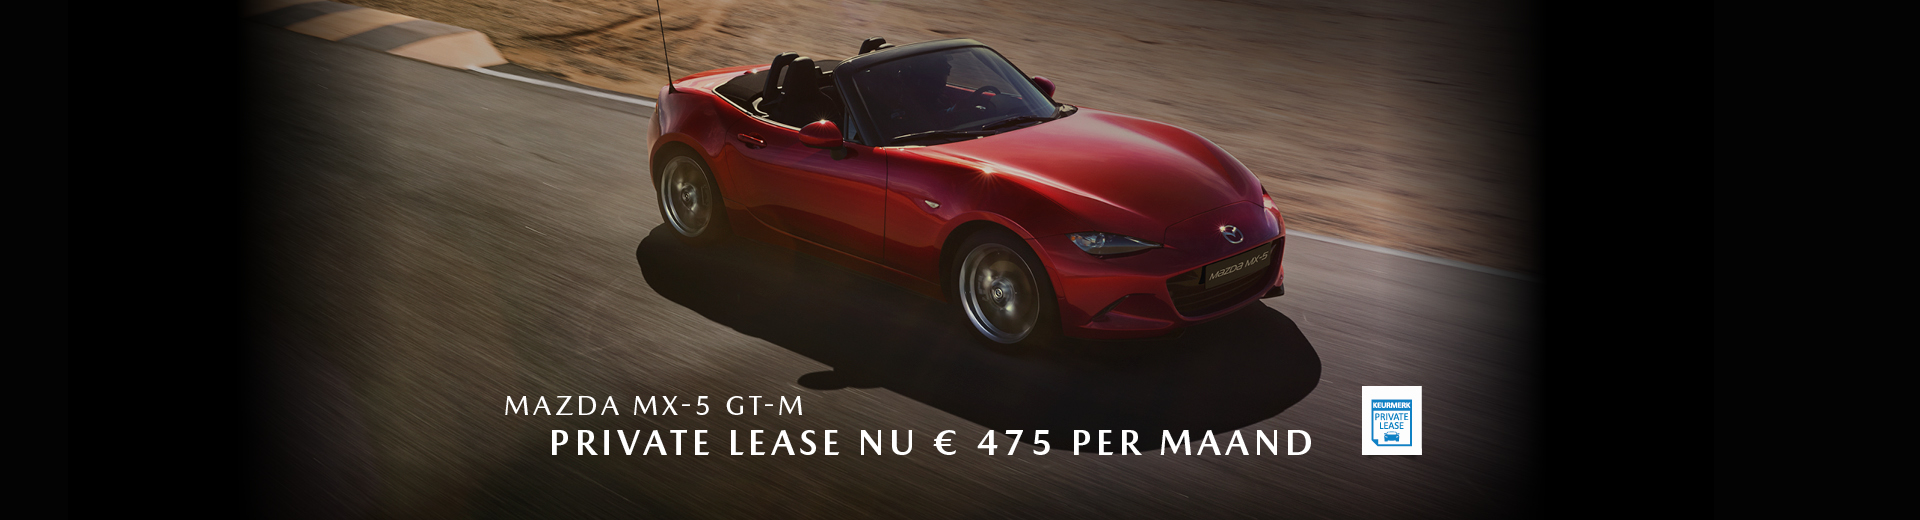 190283 Mazda Q3_Banner Mazda MX-5 GT-M_Private Lease_1920x520px [opmaak 01]